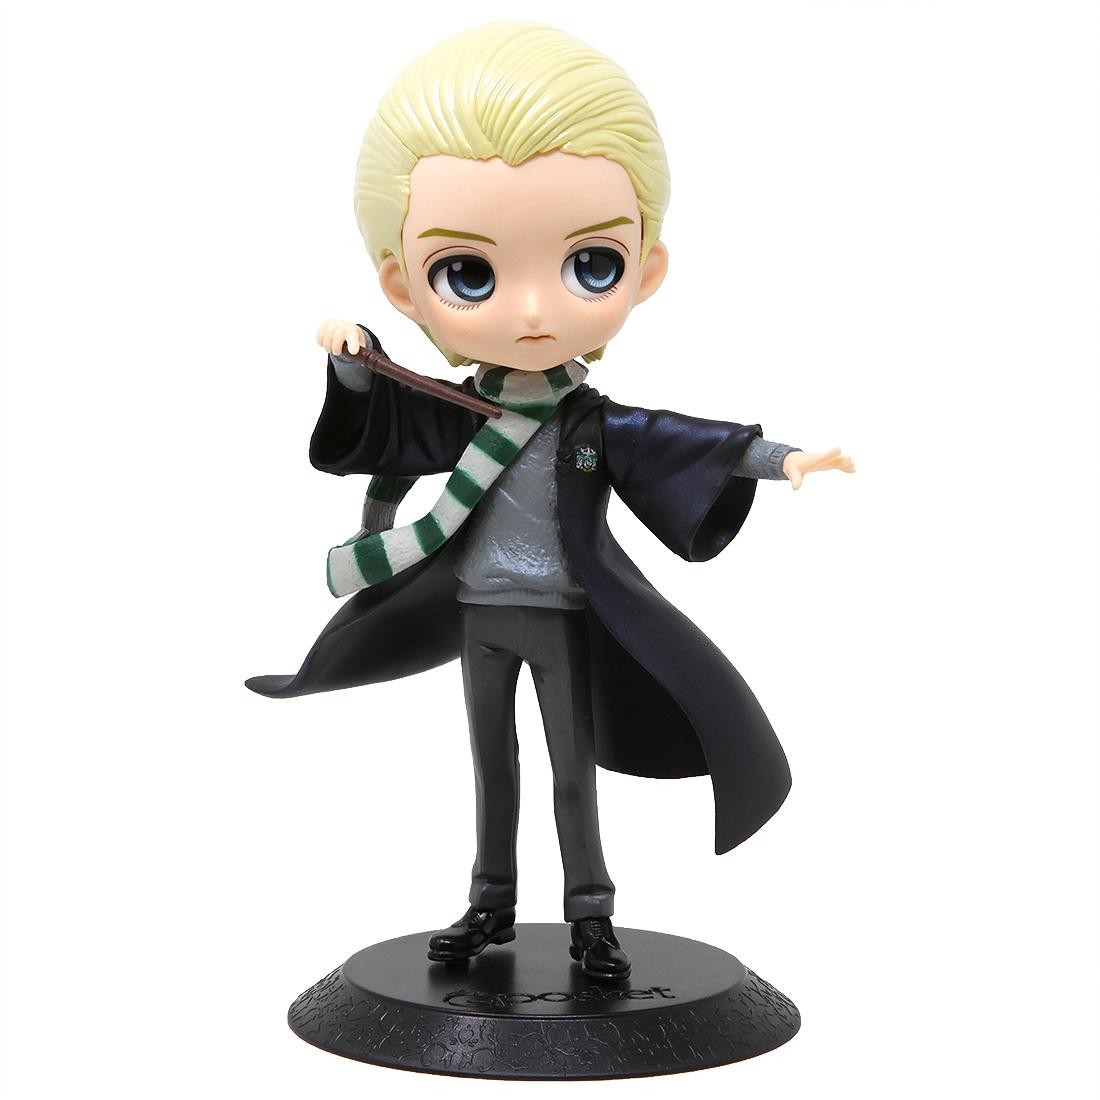 Banpresto Q Posket Harry Potter Draco Malfoy Figure - Pearl Color Ver. B (yellow)